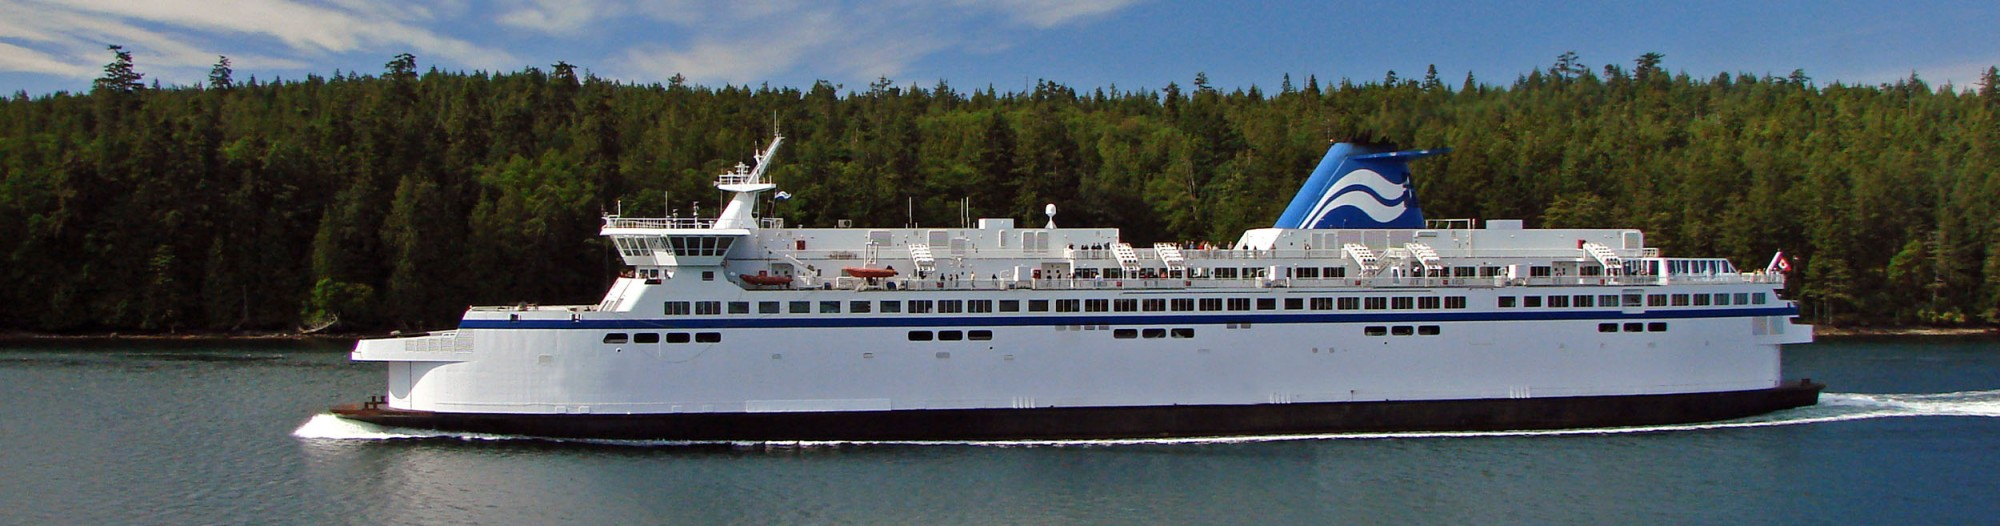 distinctly kelowna wine tours bc ferries